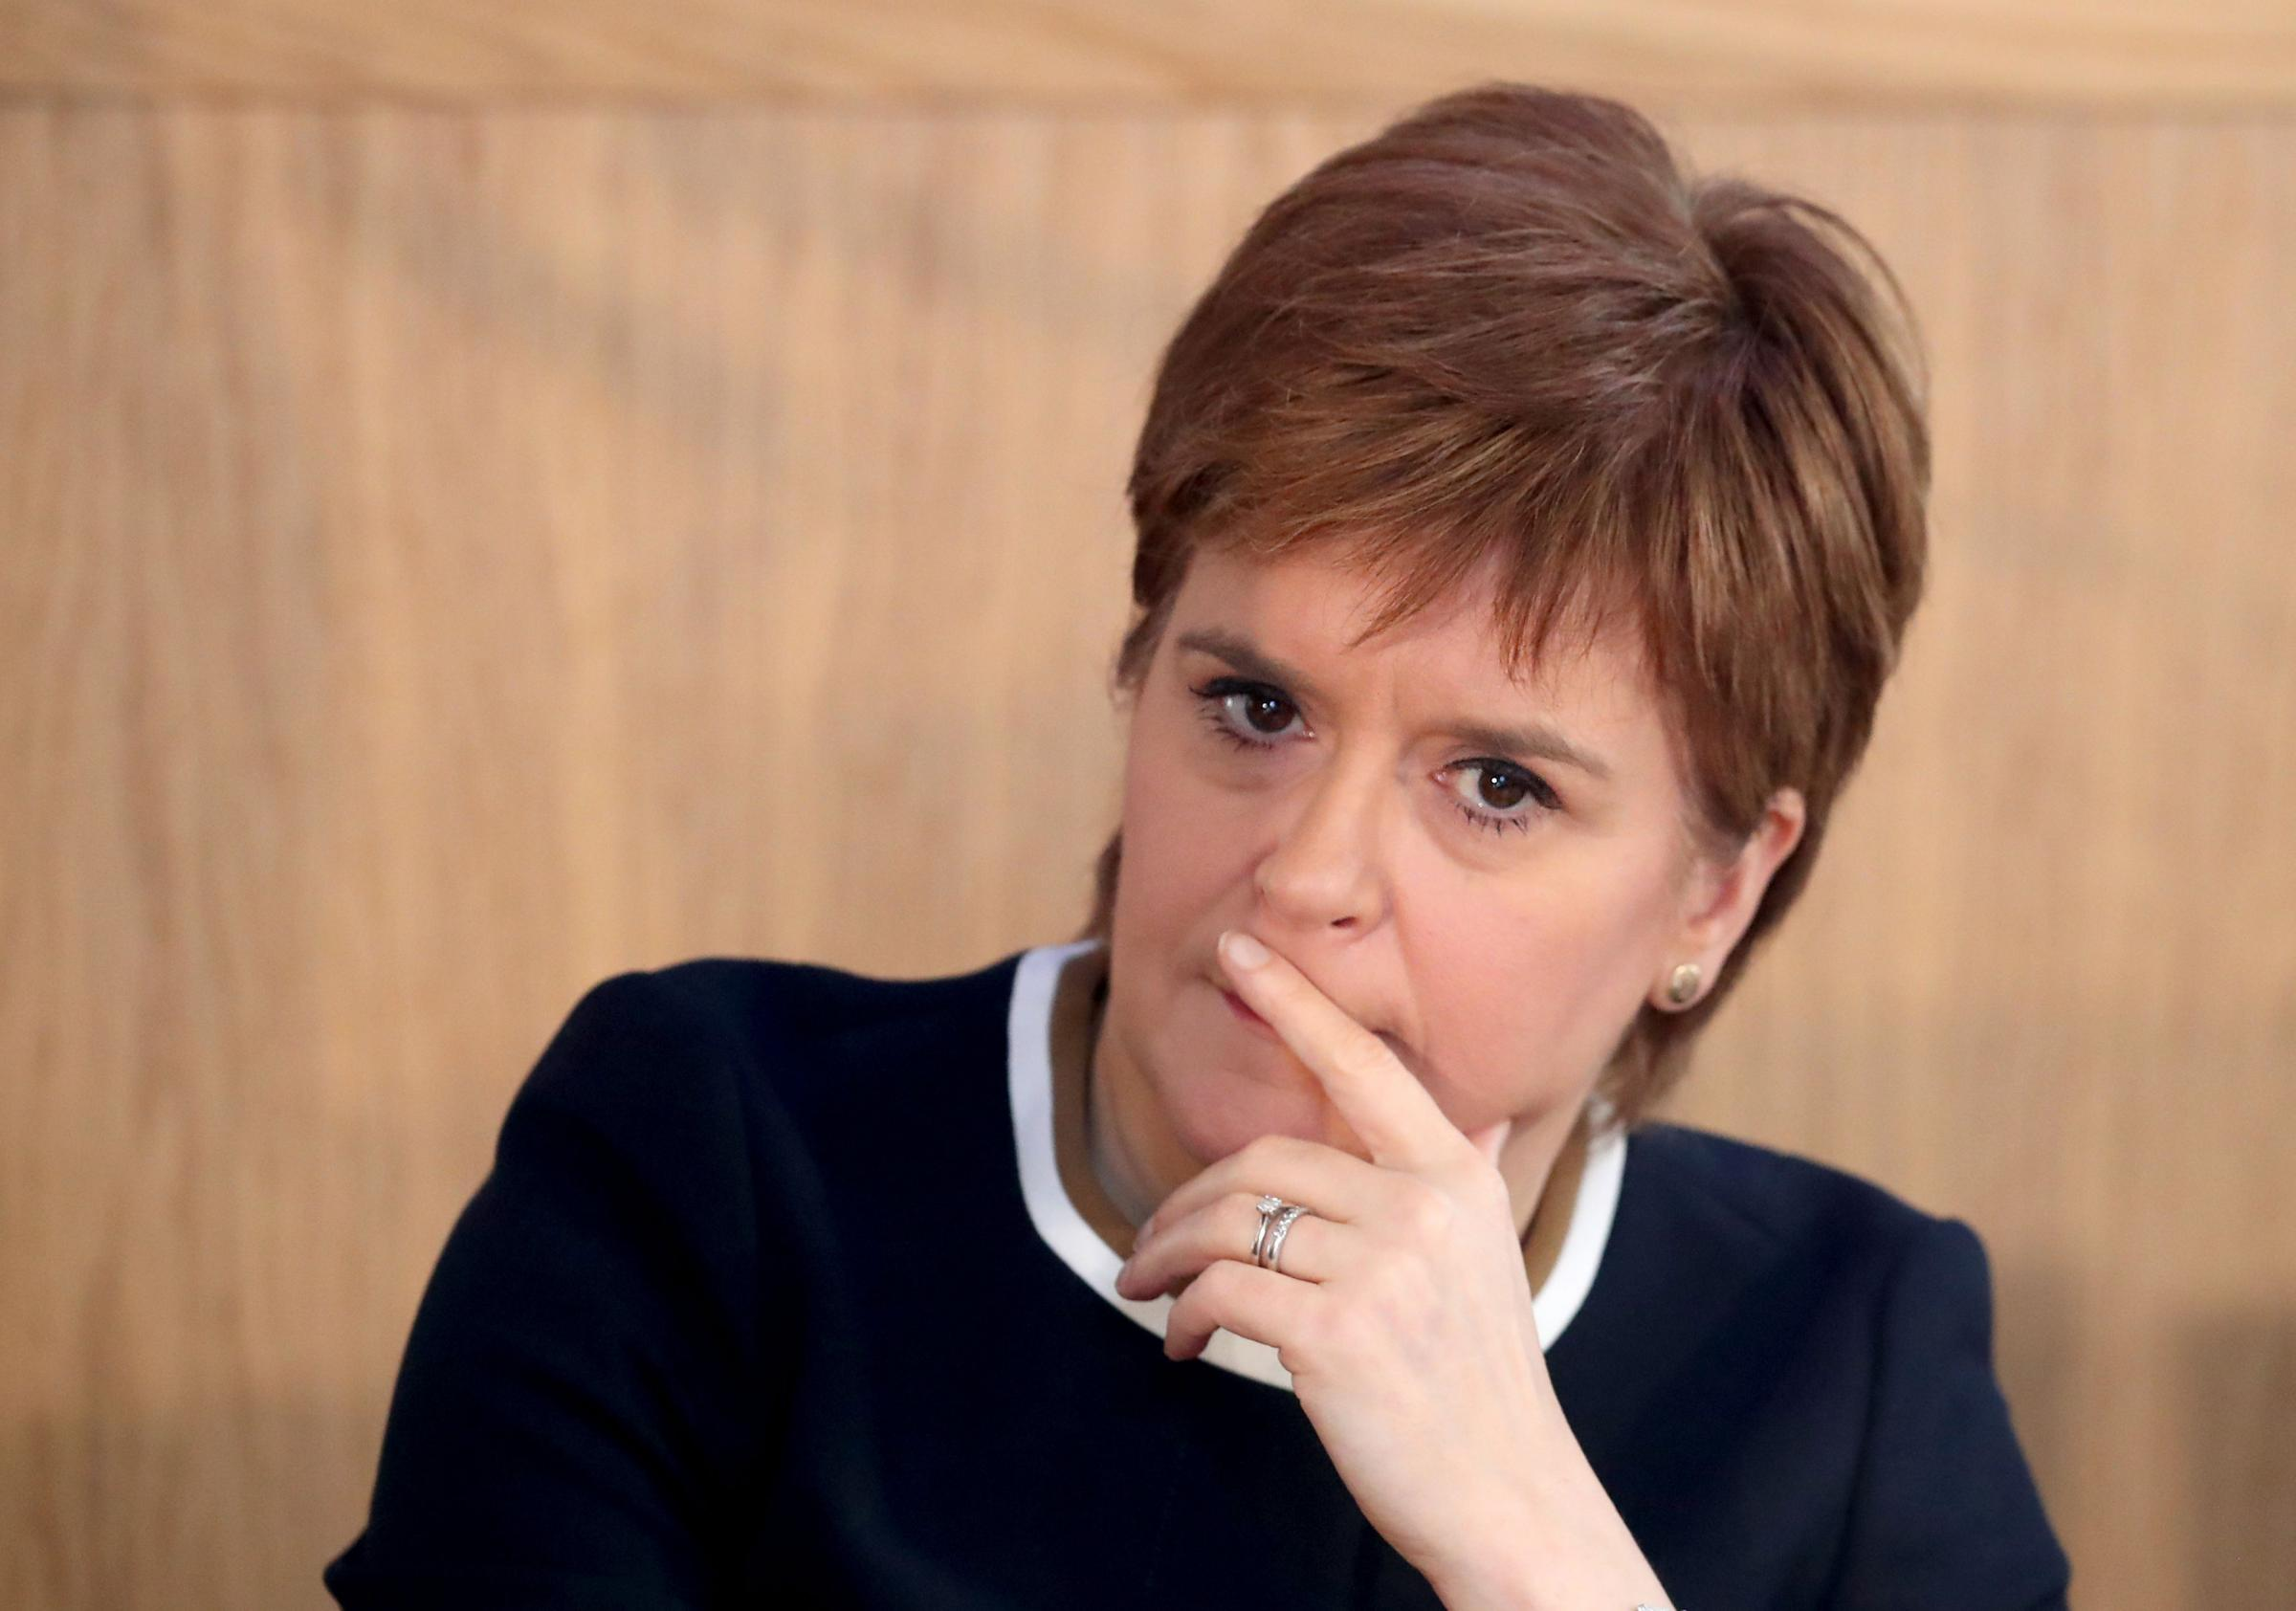 'Now things get really tough': Nicola Sturgeon issues warning over Brexit talks